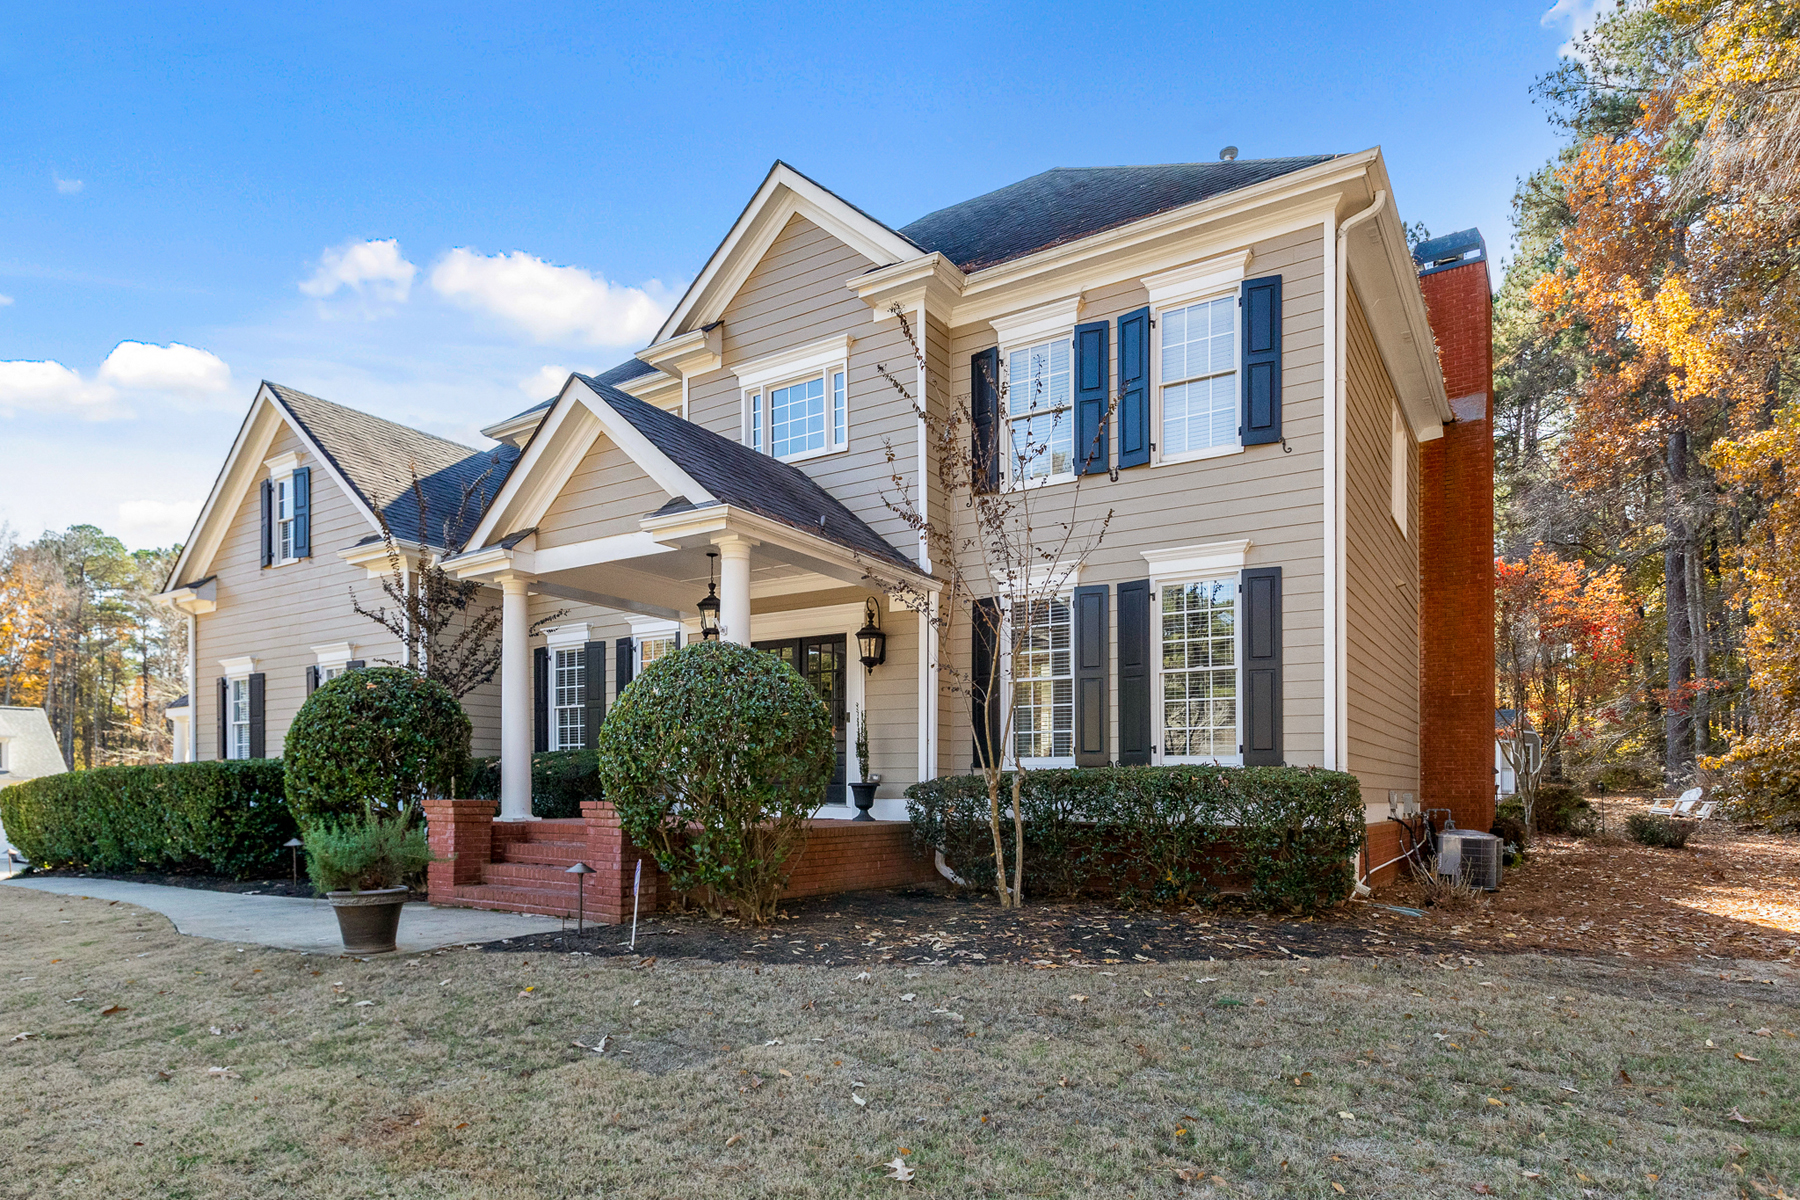 Single Family Homes for Active at Sophisticated Highgrove Home Perfectly Updated Throughout 105 Pleasant Hill Fayetteville, Georgia 30215 United States